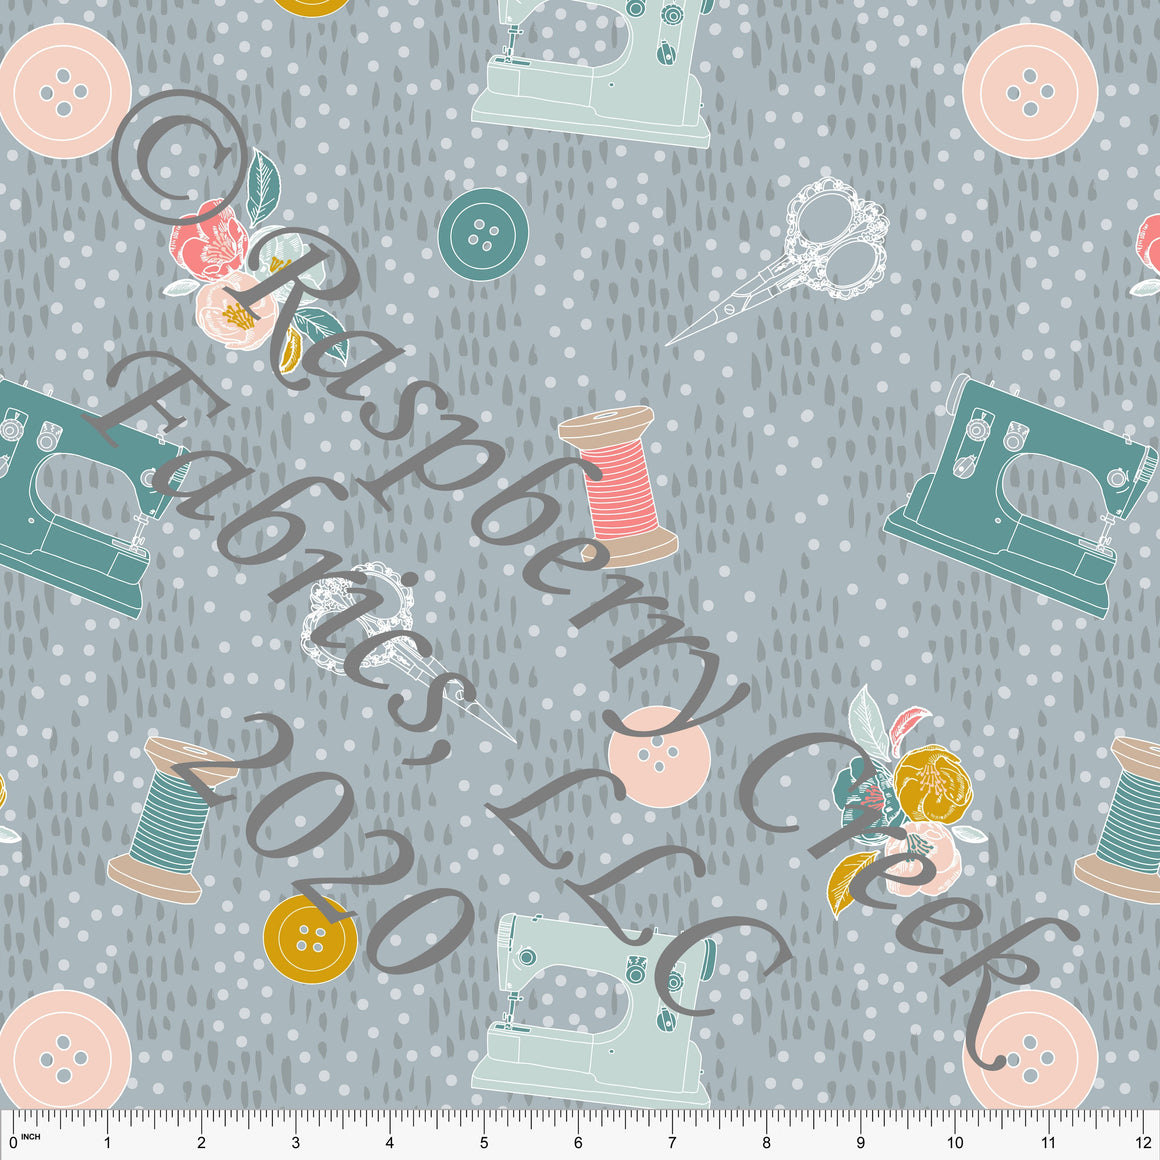 Dusty Blue Bright Teal Salmon Dusty Pink Mustard and Grey Tossed Sewing Notions Print Double Brushed Poly Knit Fabric, By Kimberly Henrie for CLUB Fabrics - Raspberry Creek Fabrics